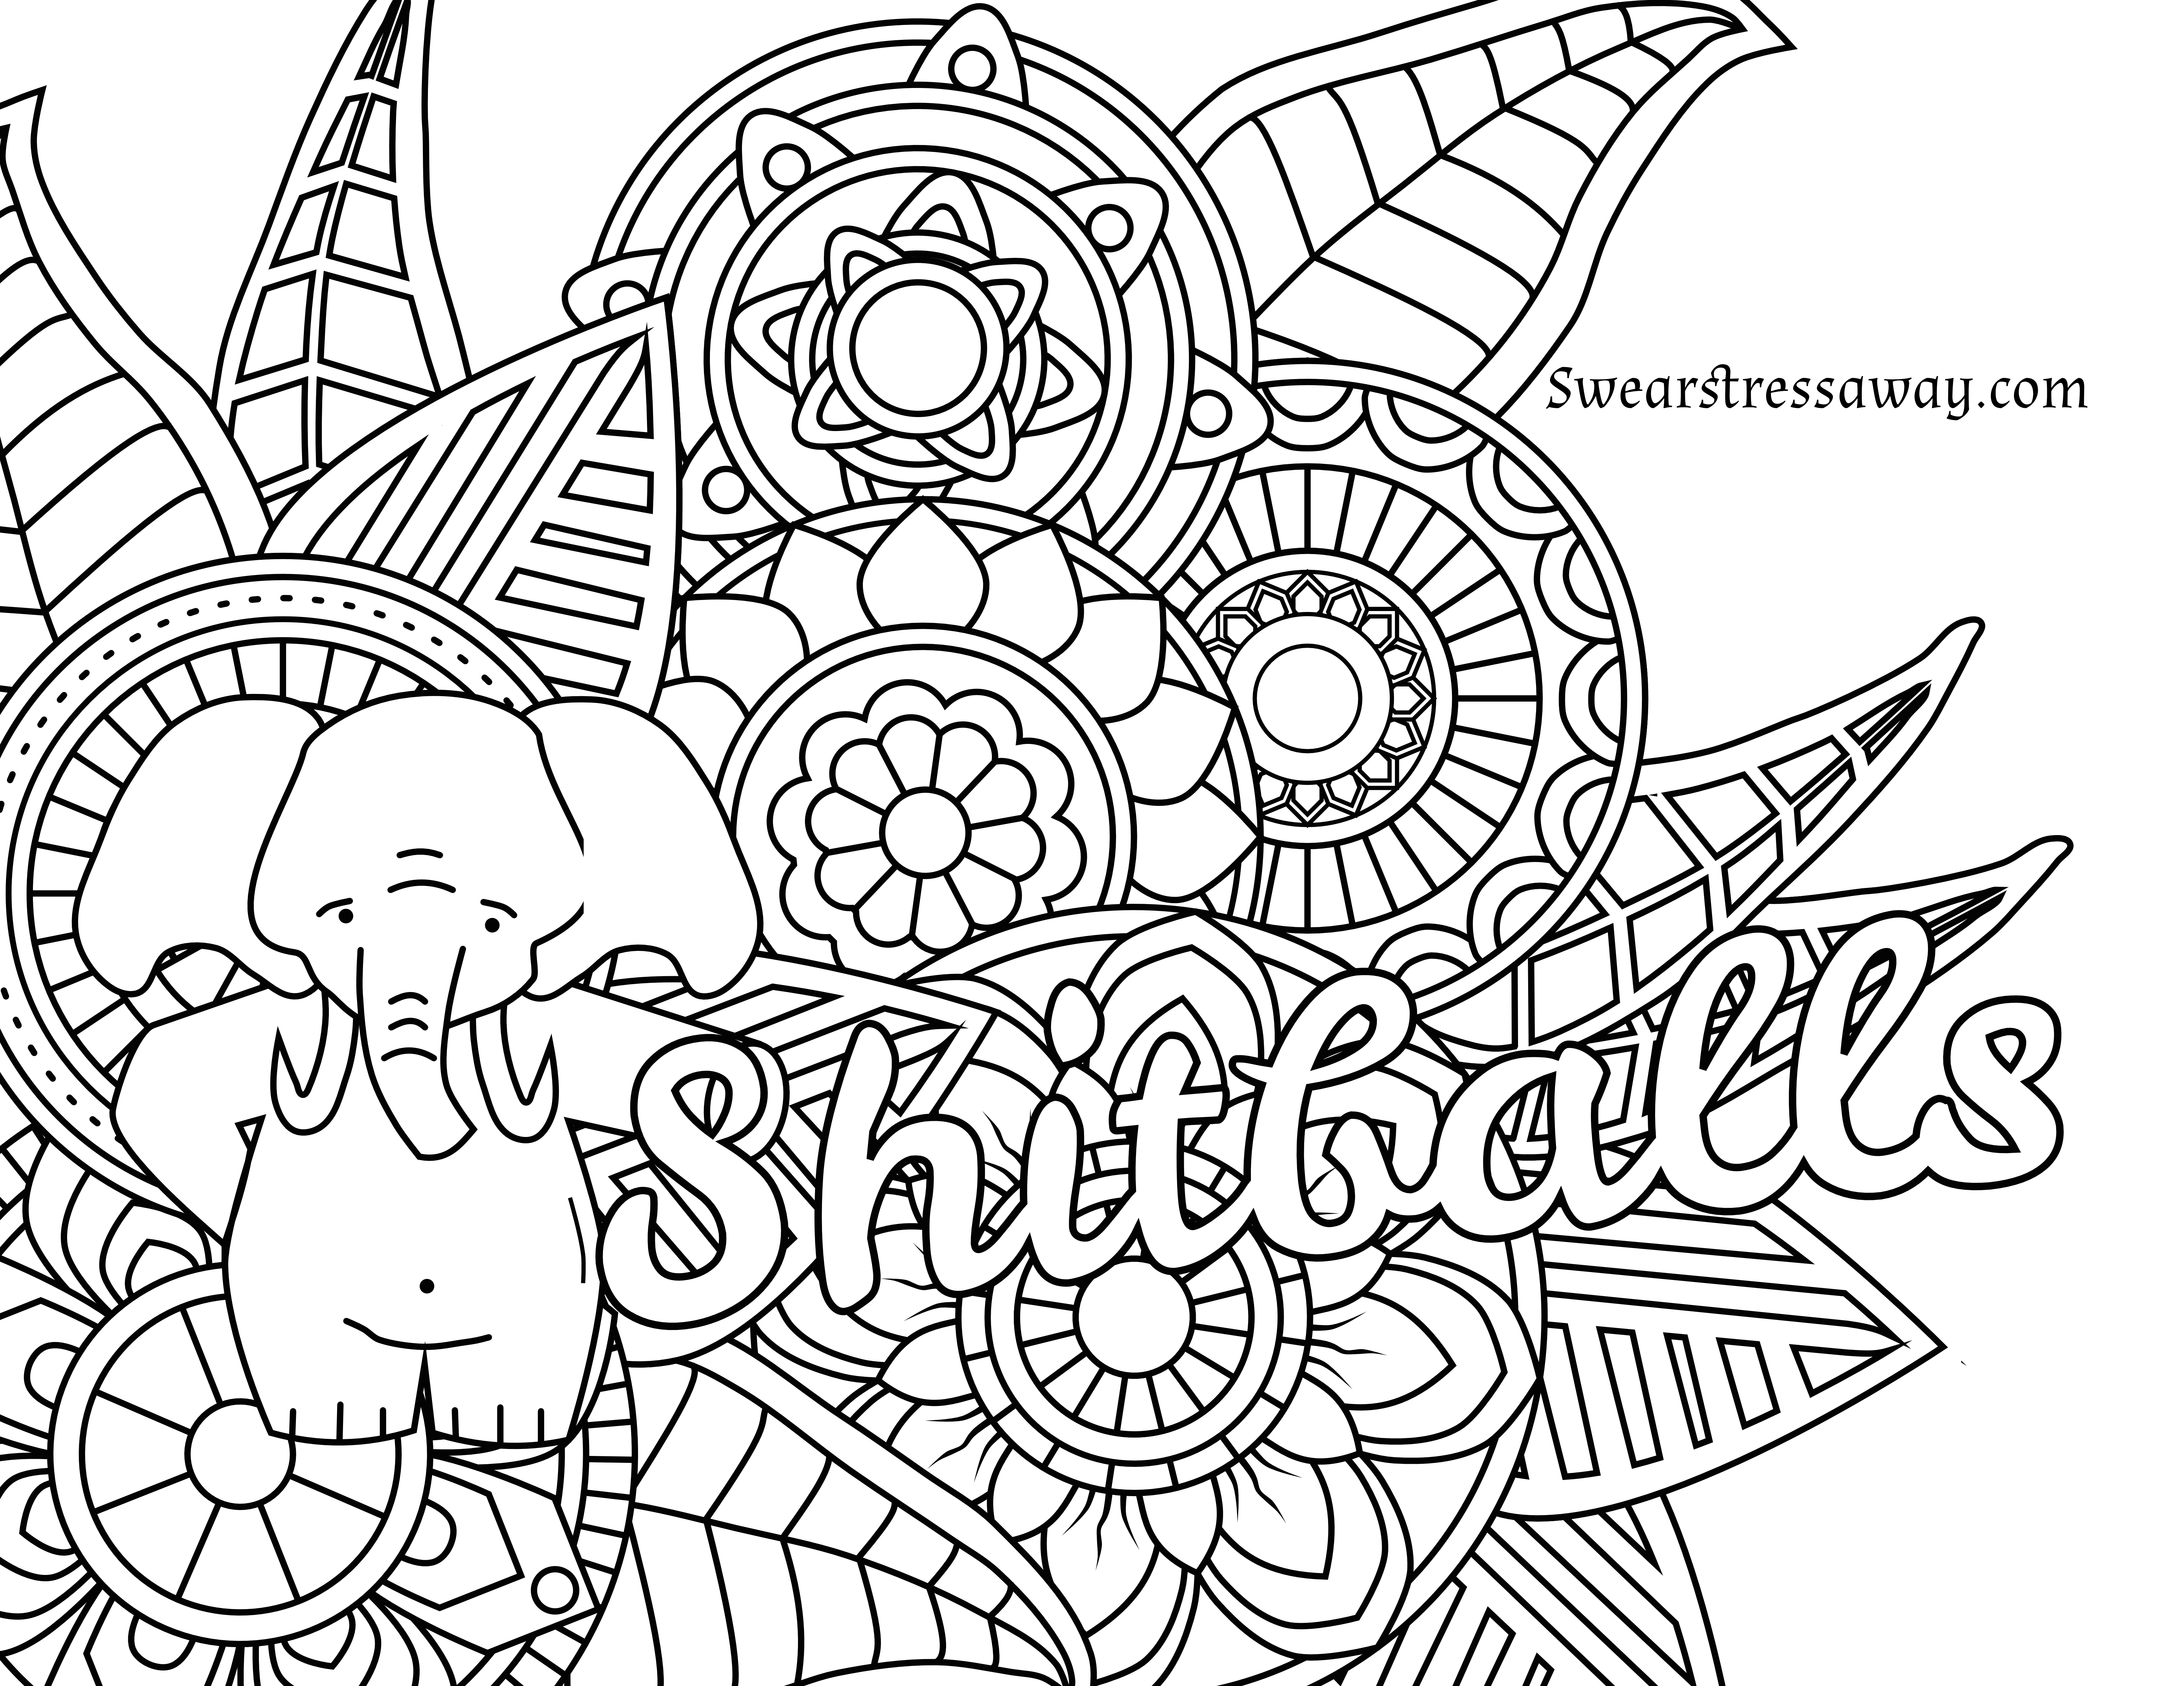 Coloring Pages : Free Printable Coloring Pages Adults Quotes For - Free Printable Coloring Sheets